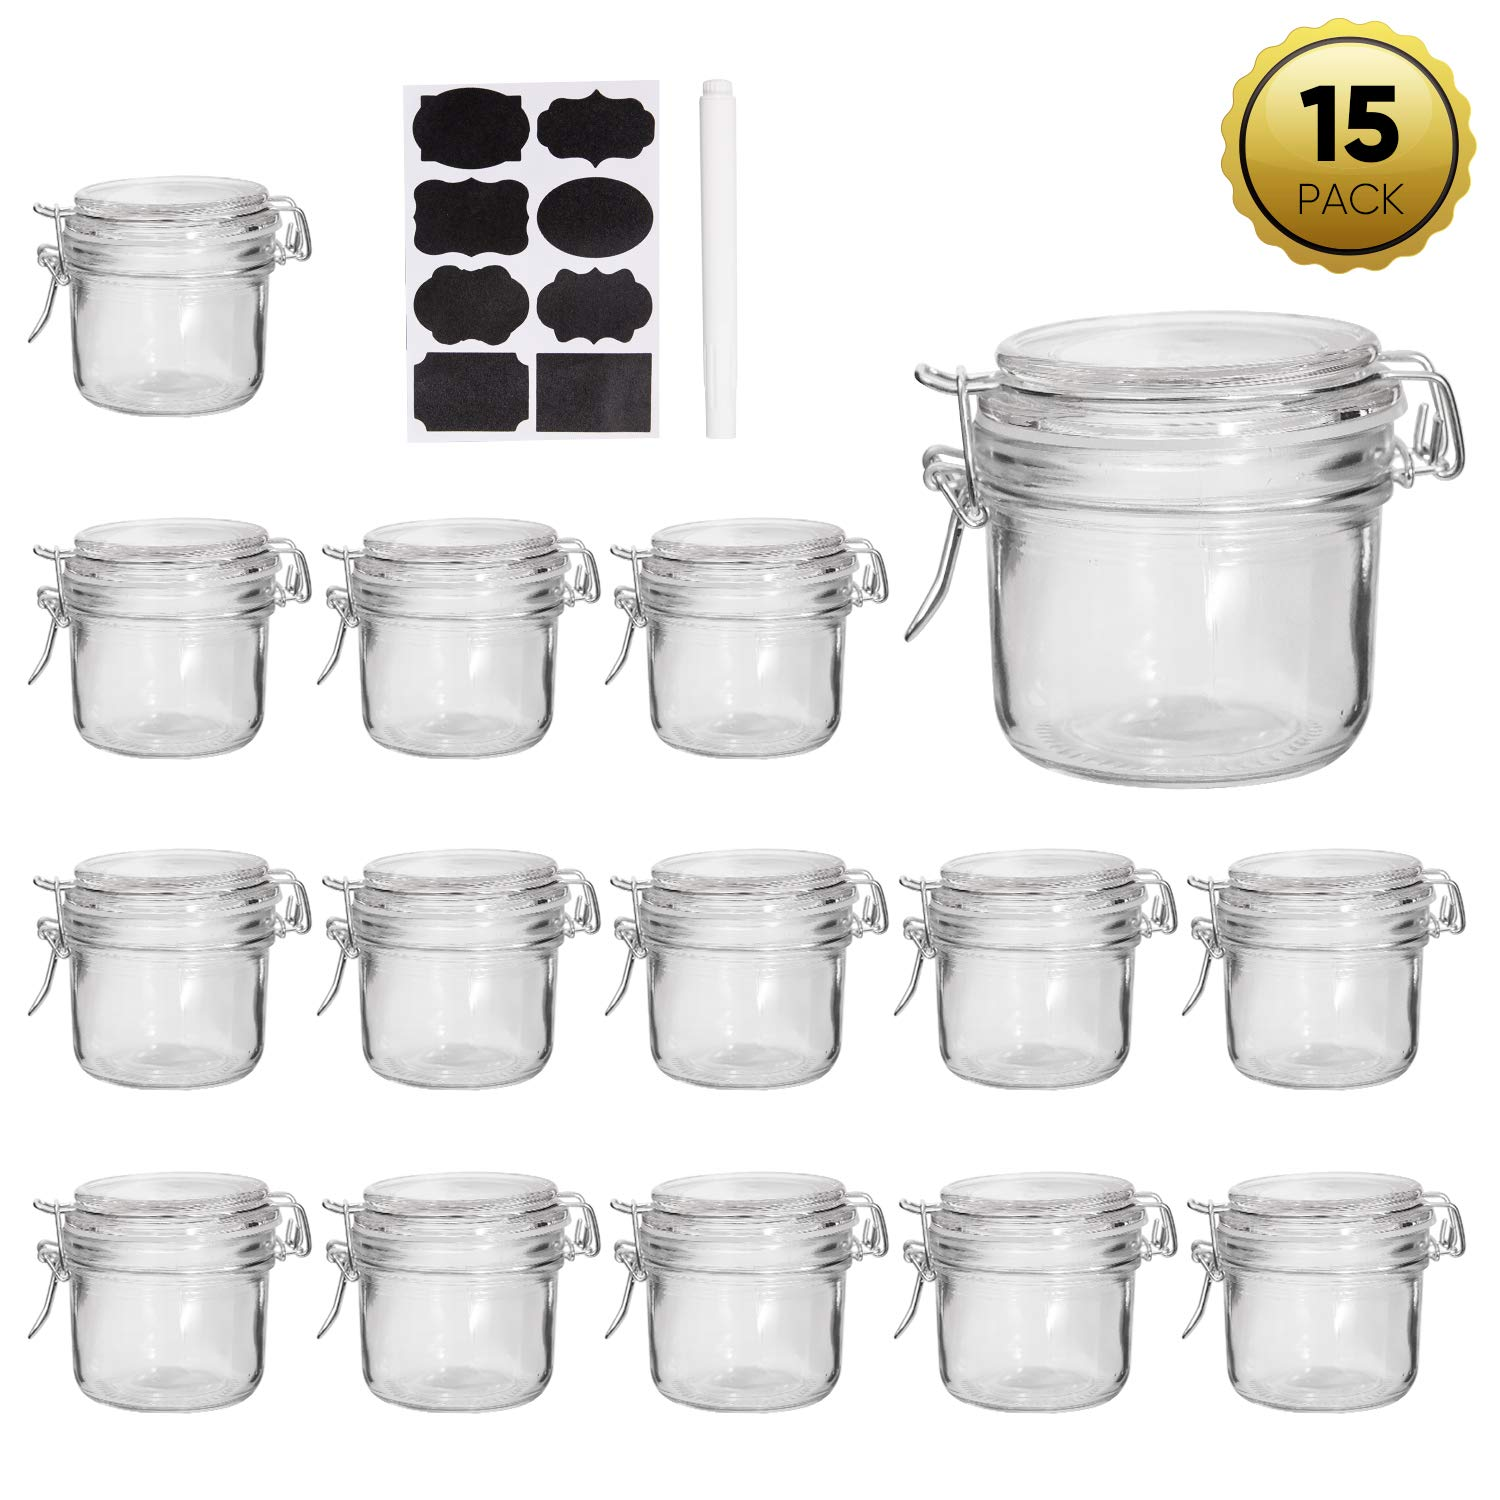 Mason Jars,Accguan Glass Jars With Rubber Gasket And Hinged Lid,7 OZ Small Canning Jars,Ideal For Storage,Coffee,Beans,Sugar,Snacks,Candy,Coookies,Dry Food,Set Of 15